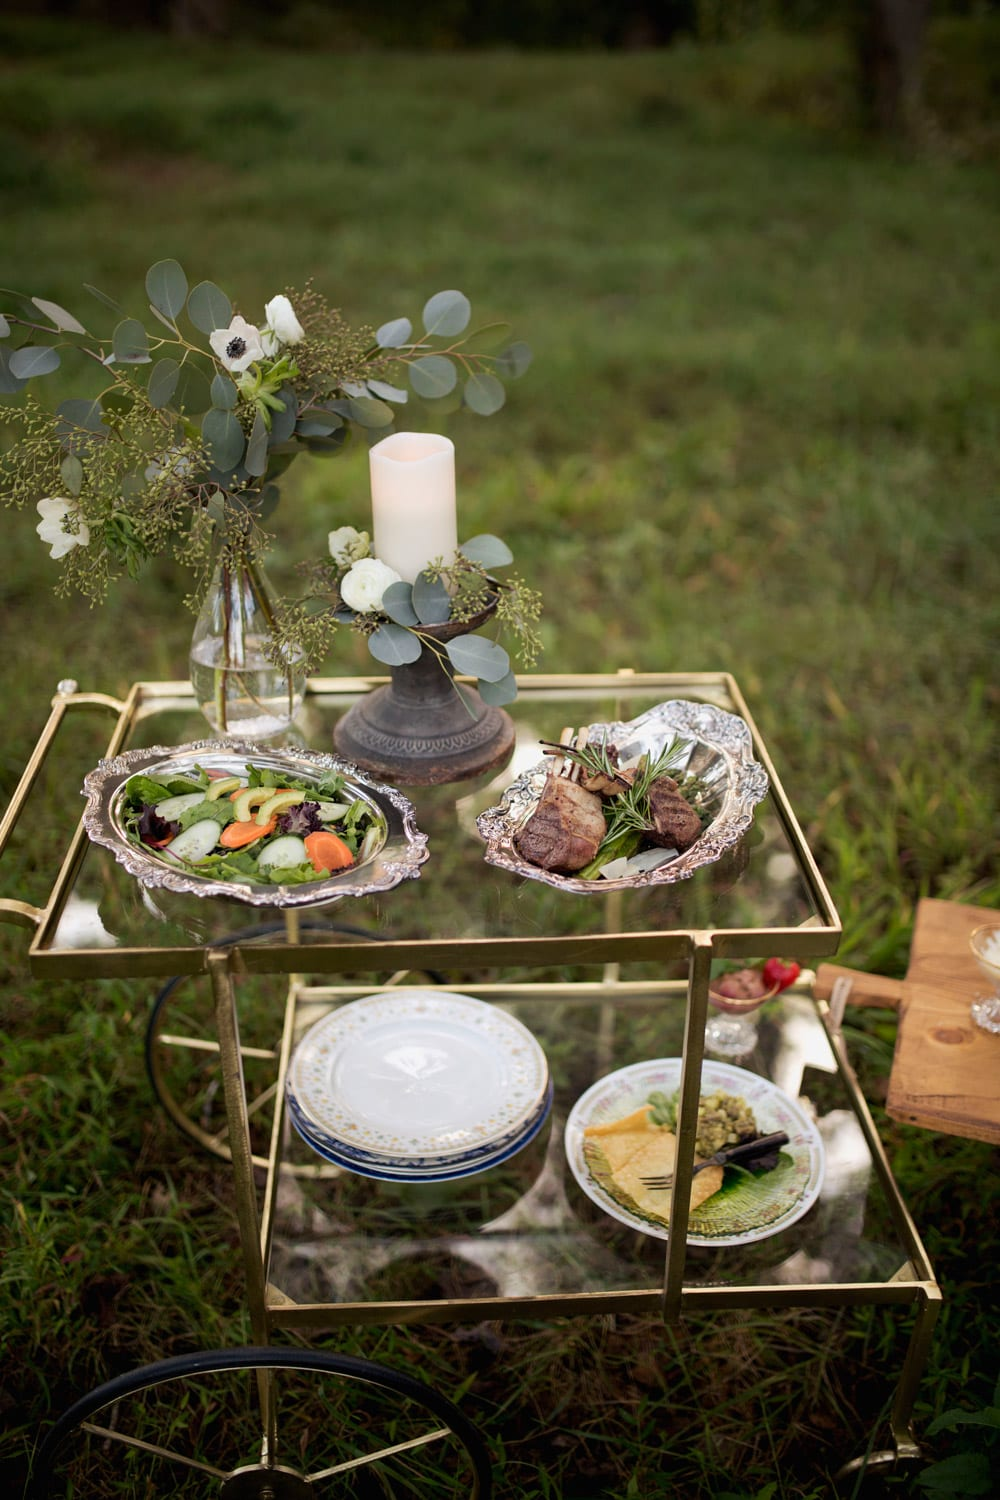 Glass table with food set out in the woods